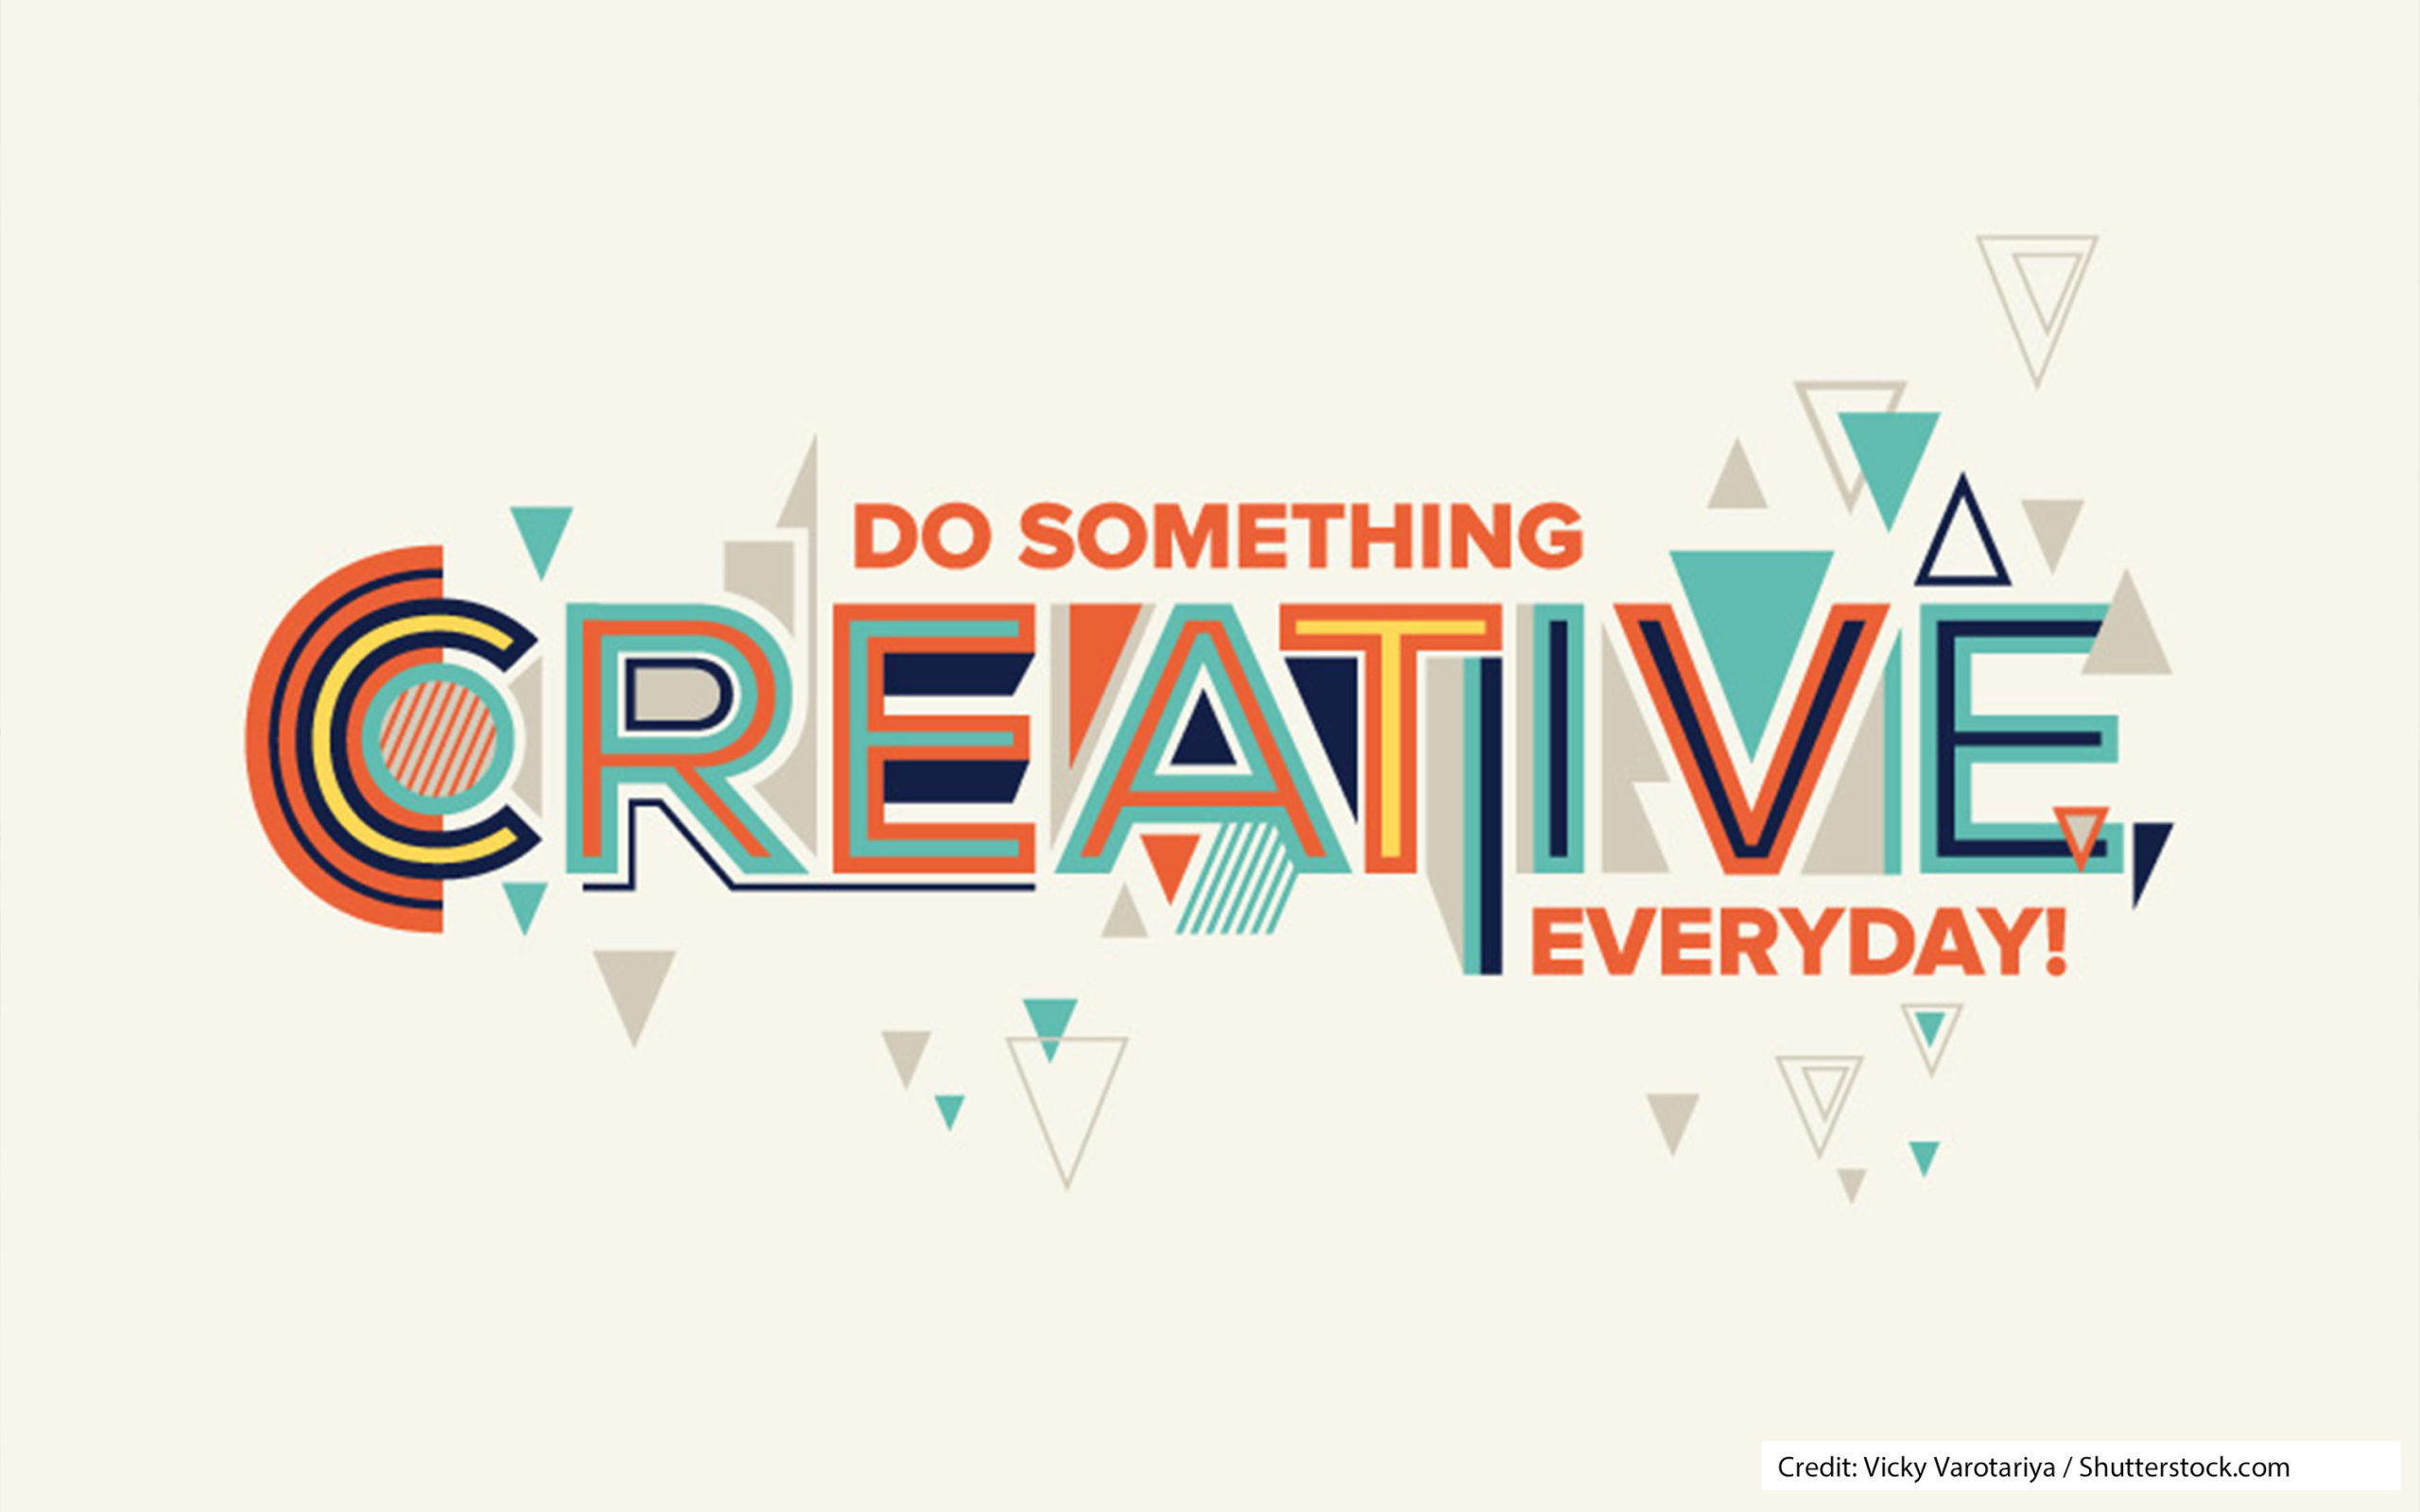 Jon Sharpe how creatives stay creative